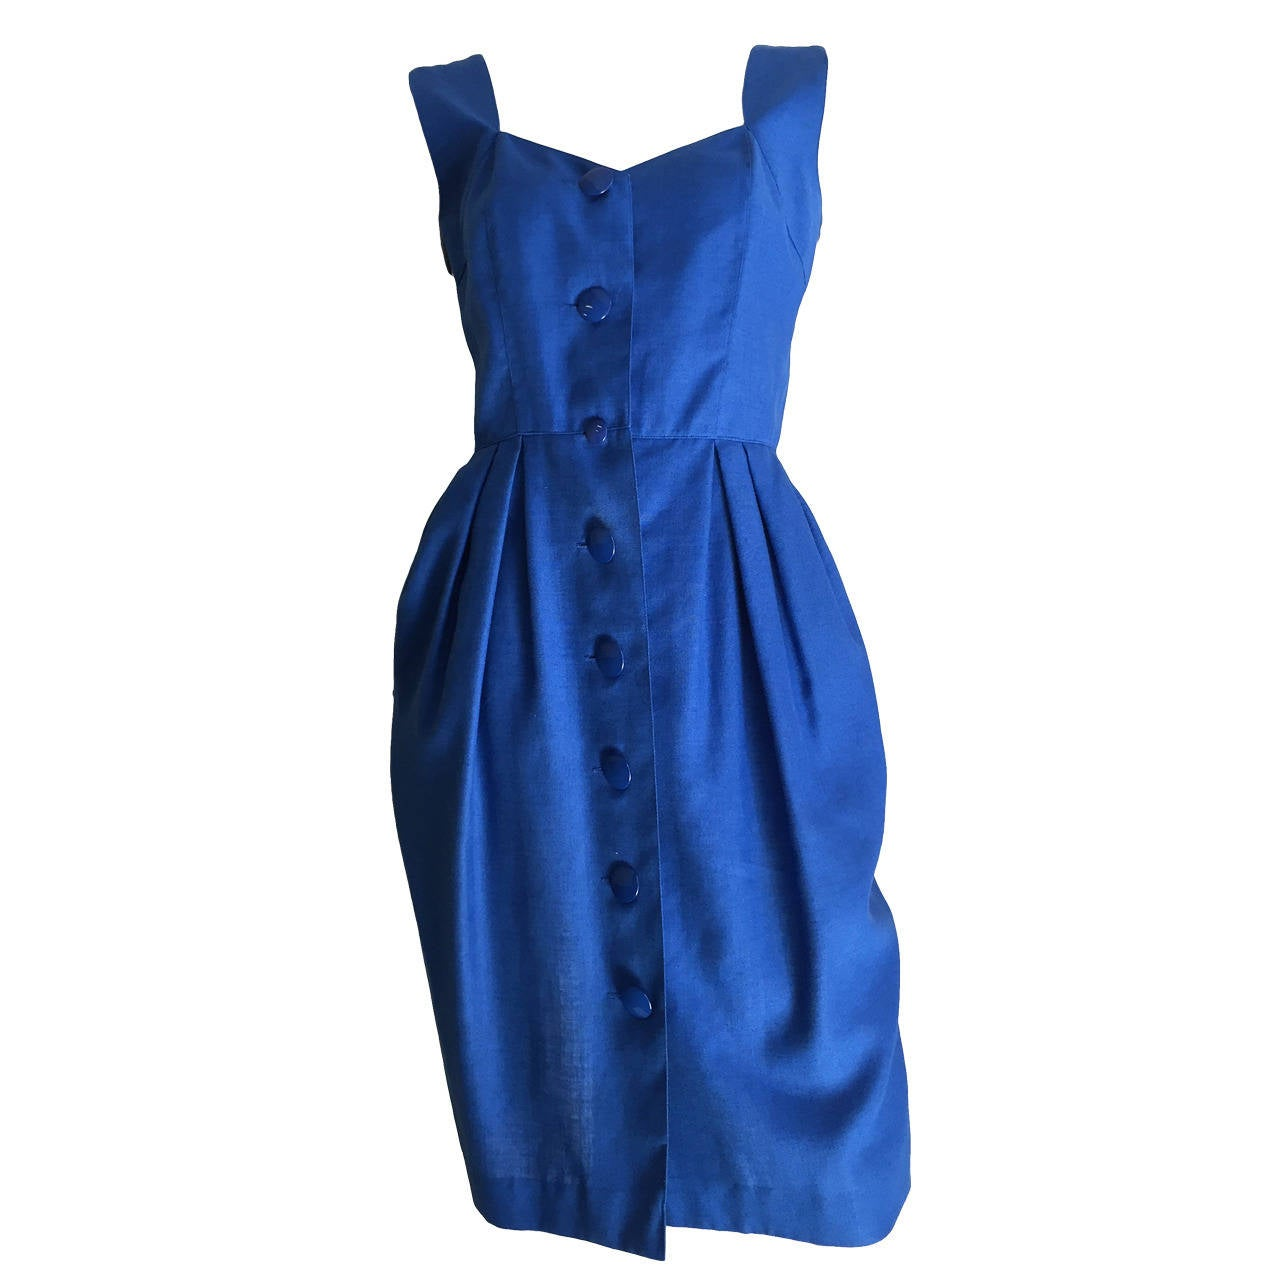 Guy Laroche Paris 80s blue dress with pockets size 6. 1